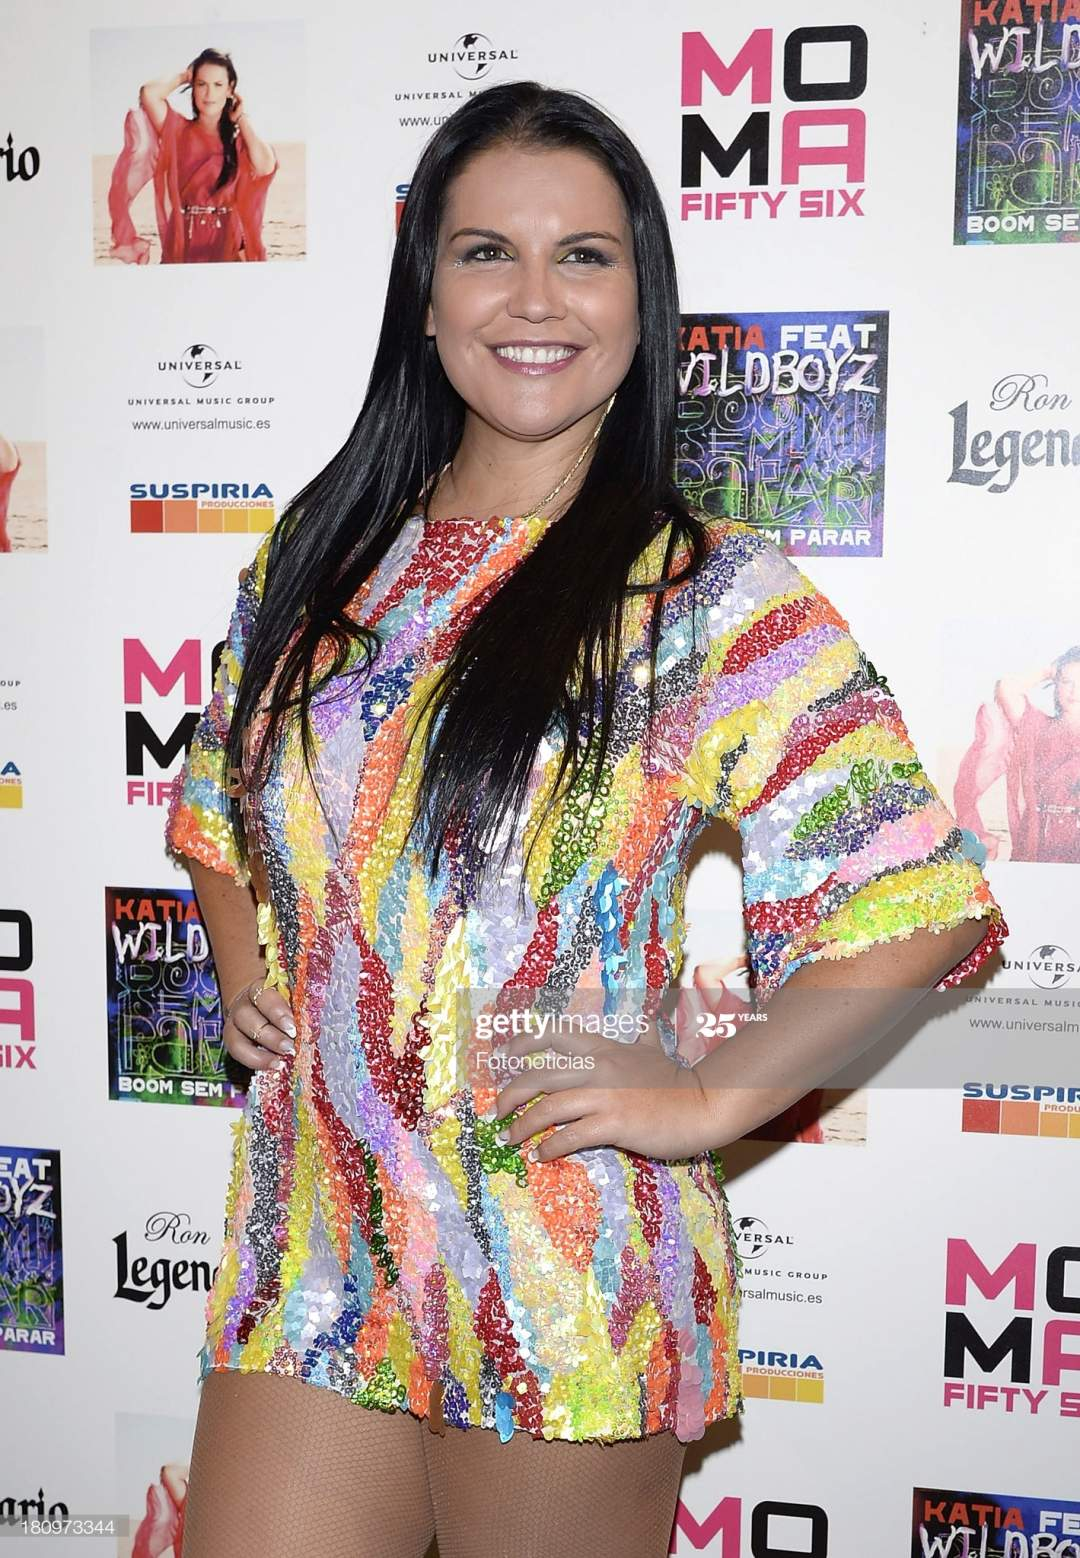 Katia Aveiro Presents Her First Album Feat Wildboyz At Moma Club On Picture Id180973344?s=28